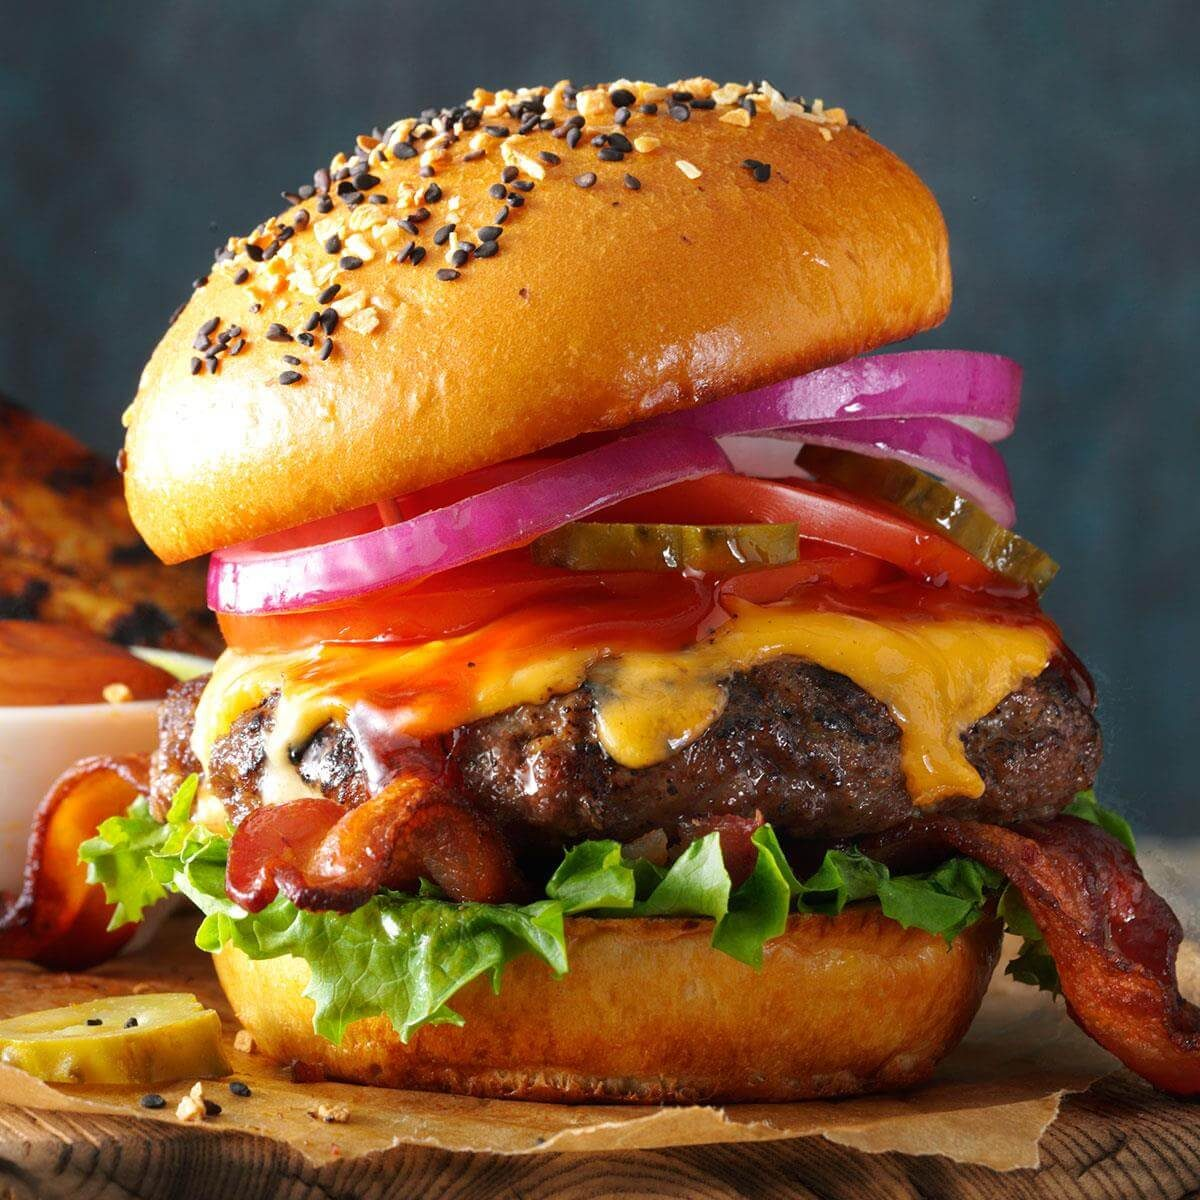 Grilling the perfect burger piled high with cheese, tomatoes, onions, pickles, bacon, lettuce and a side of steak fries